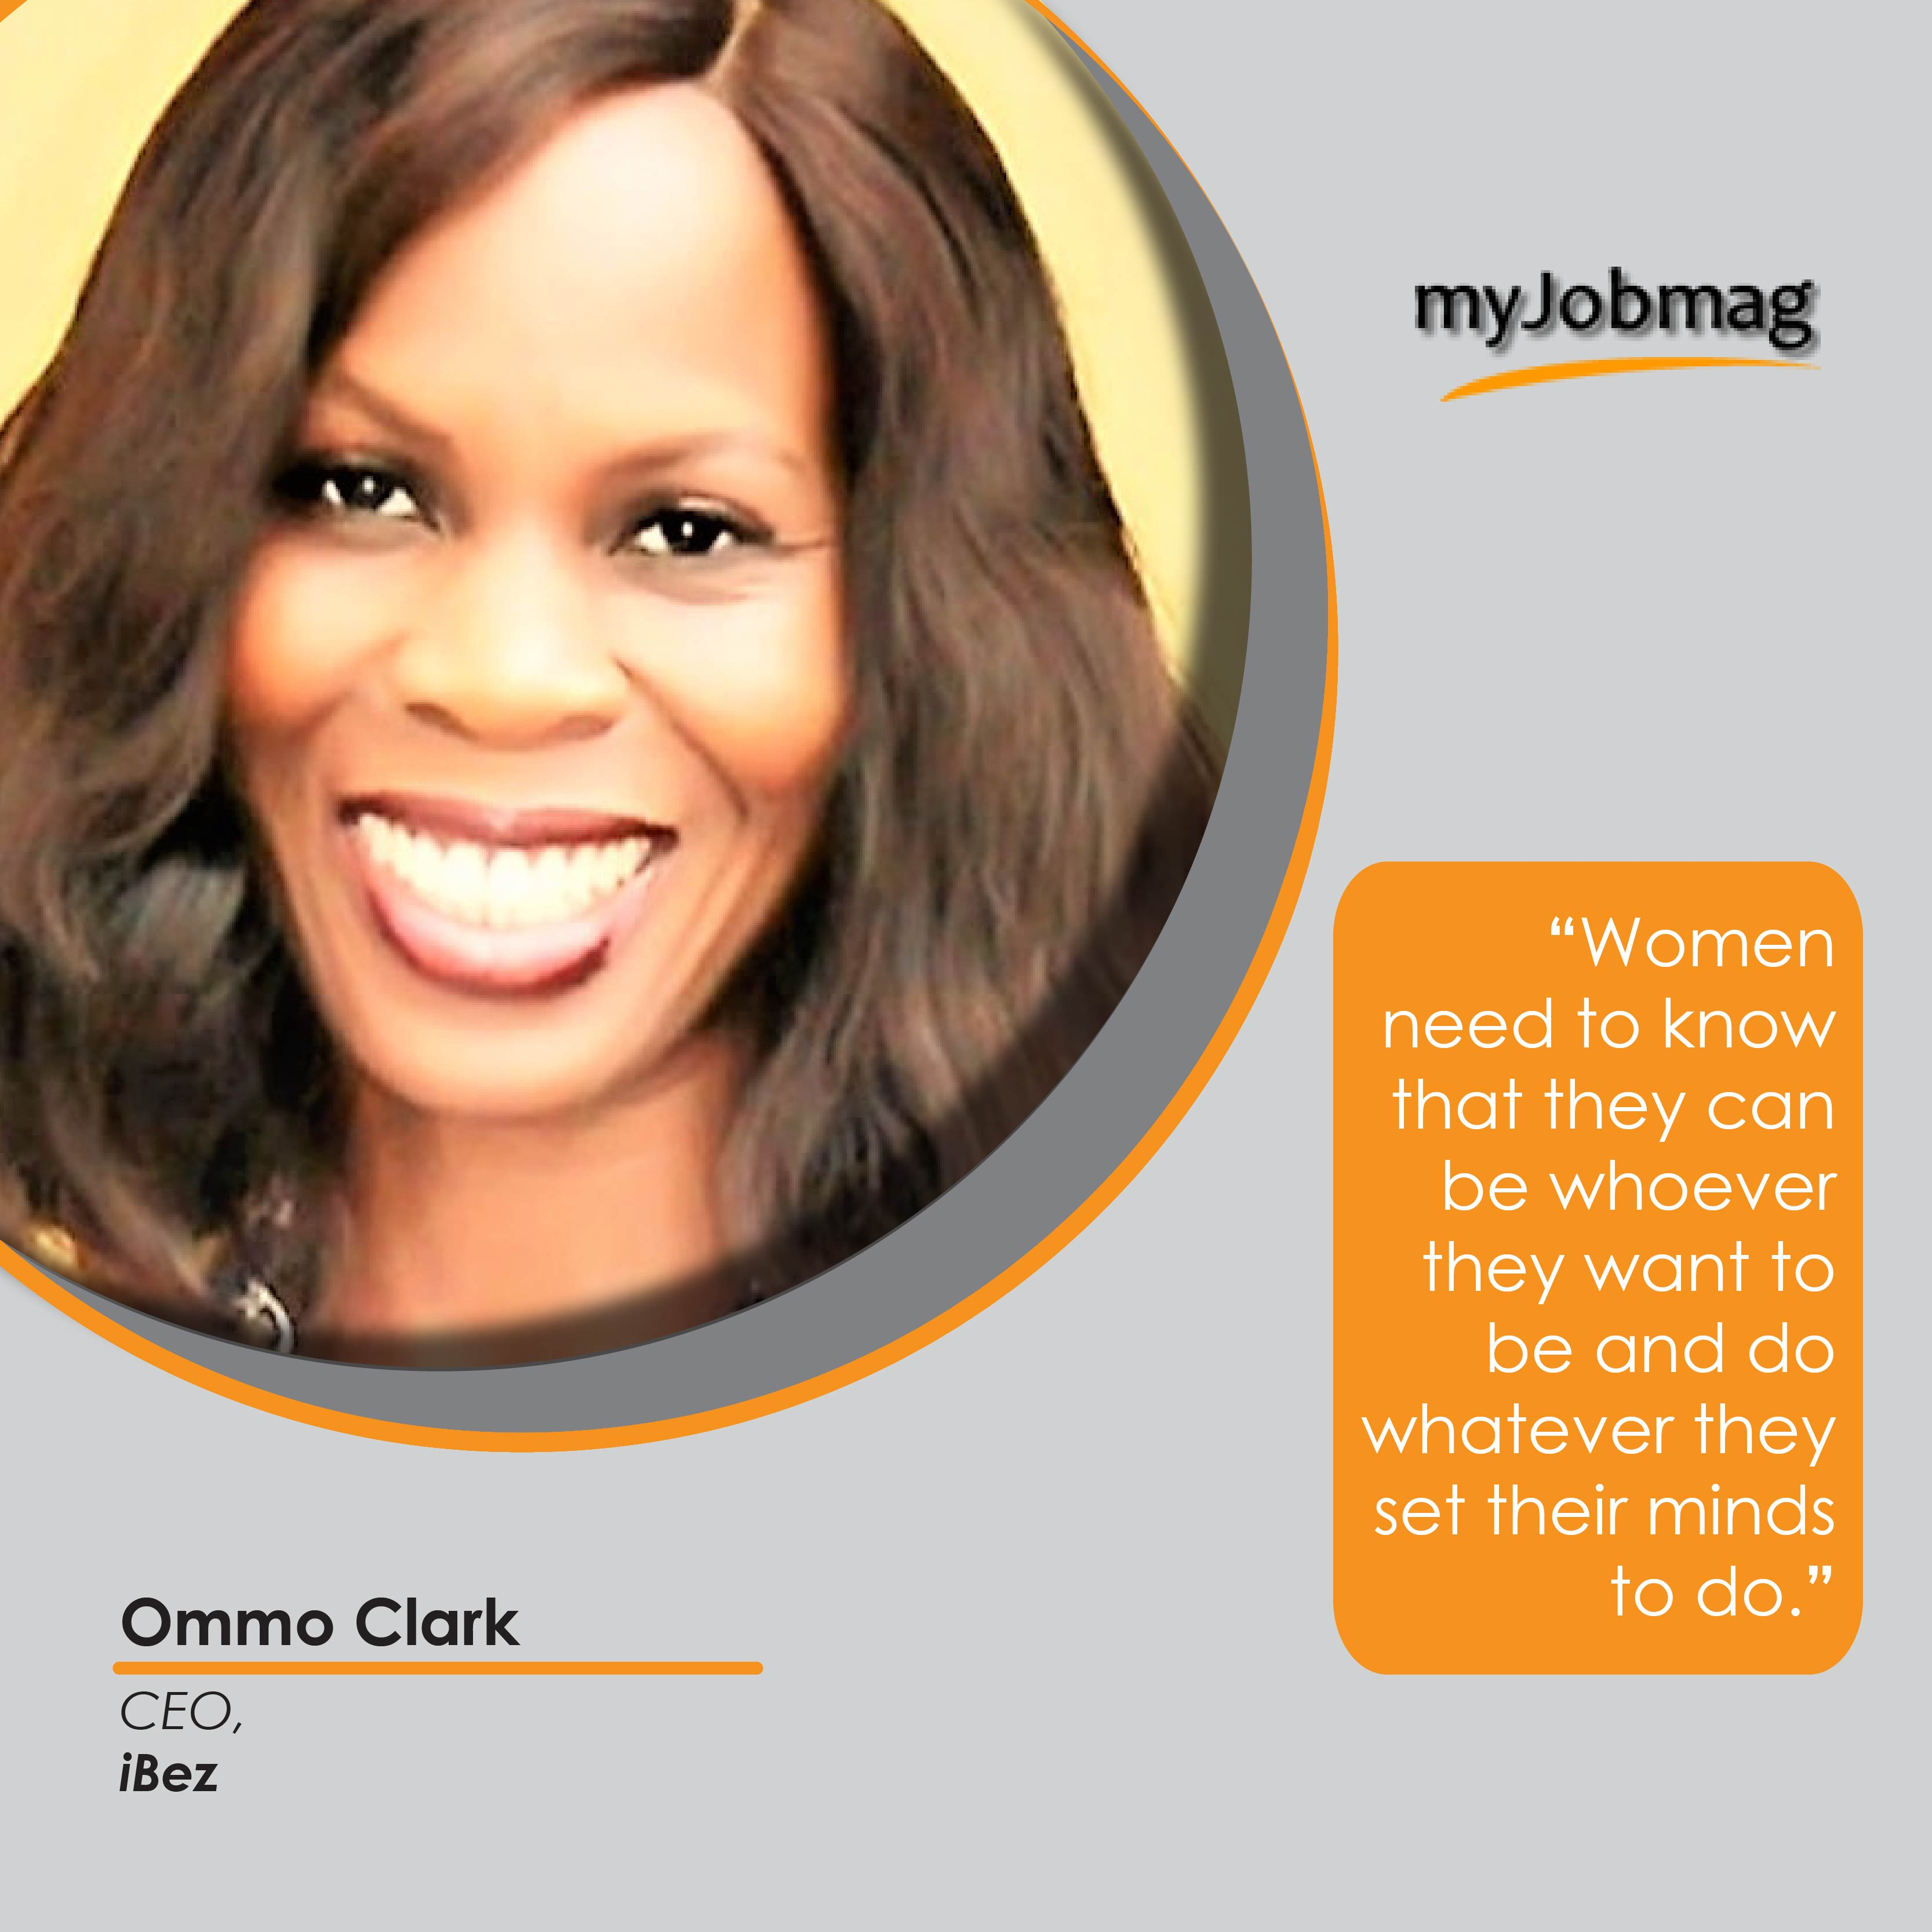 Ommo Clark career advice MyJobMag